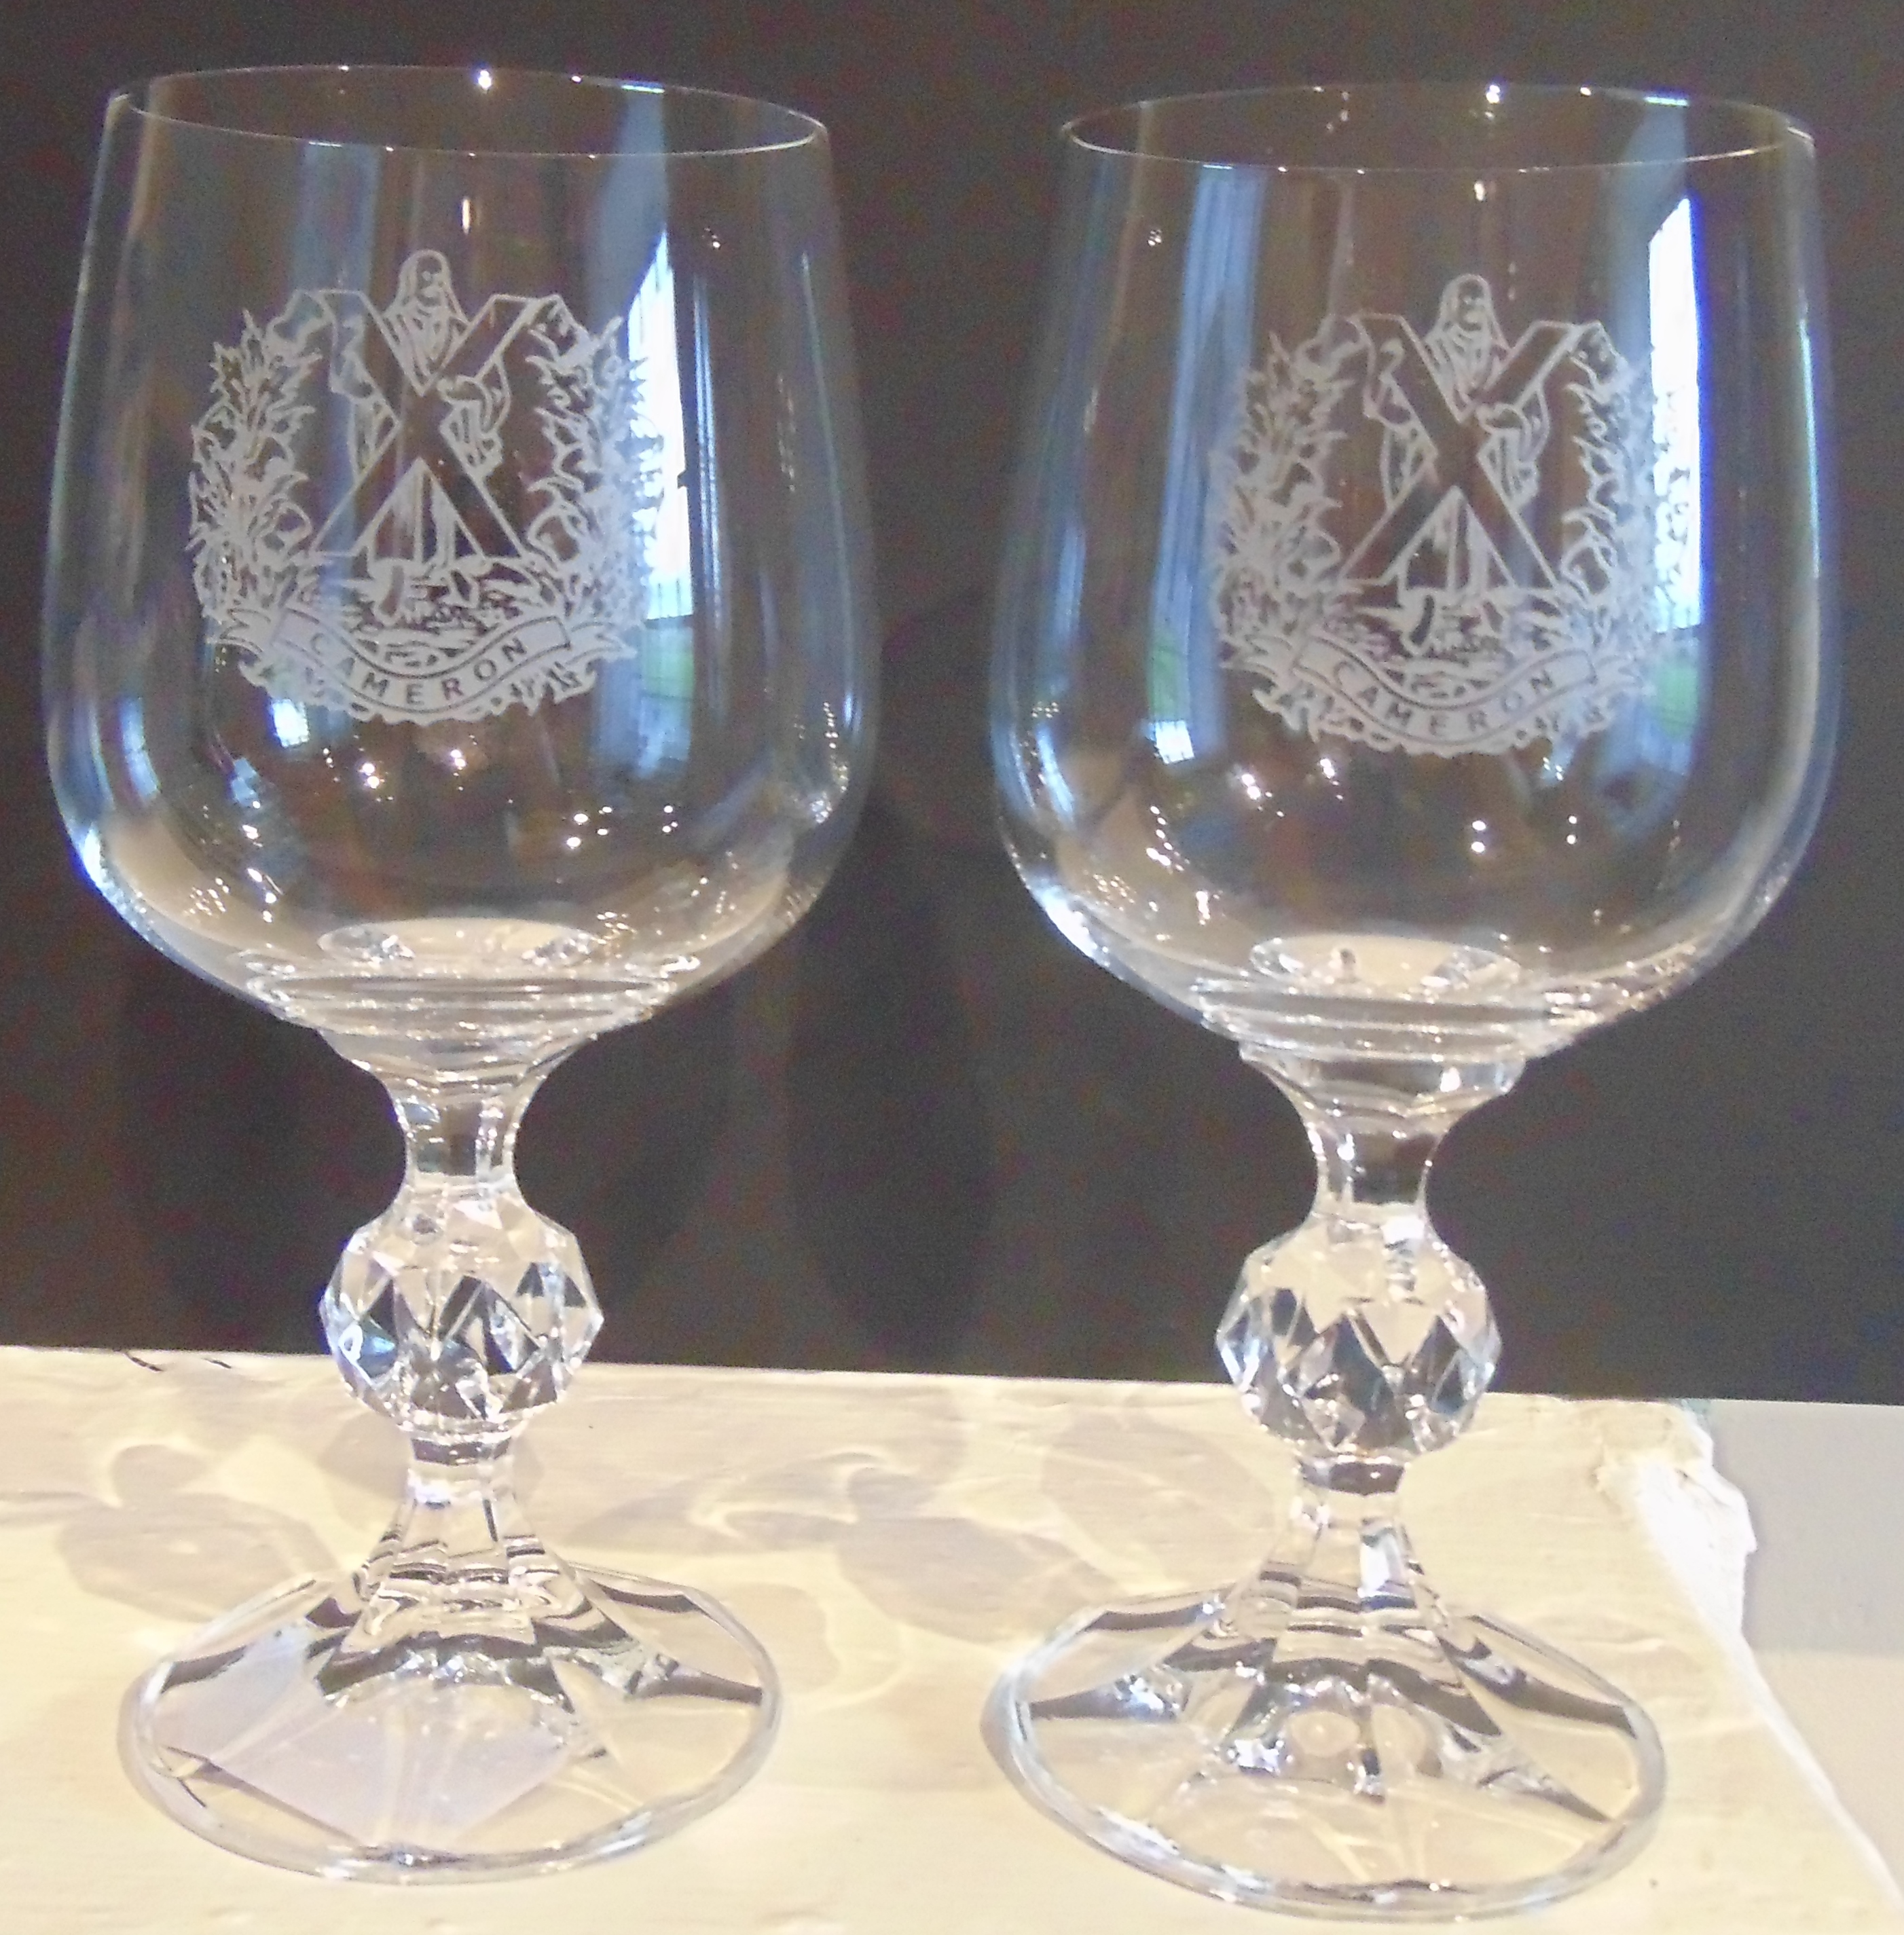 The Queens Own Cameron Highlanders set of two Wine Glasses